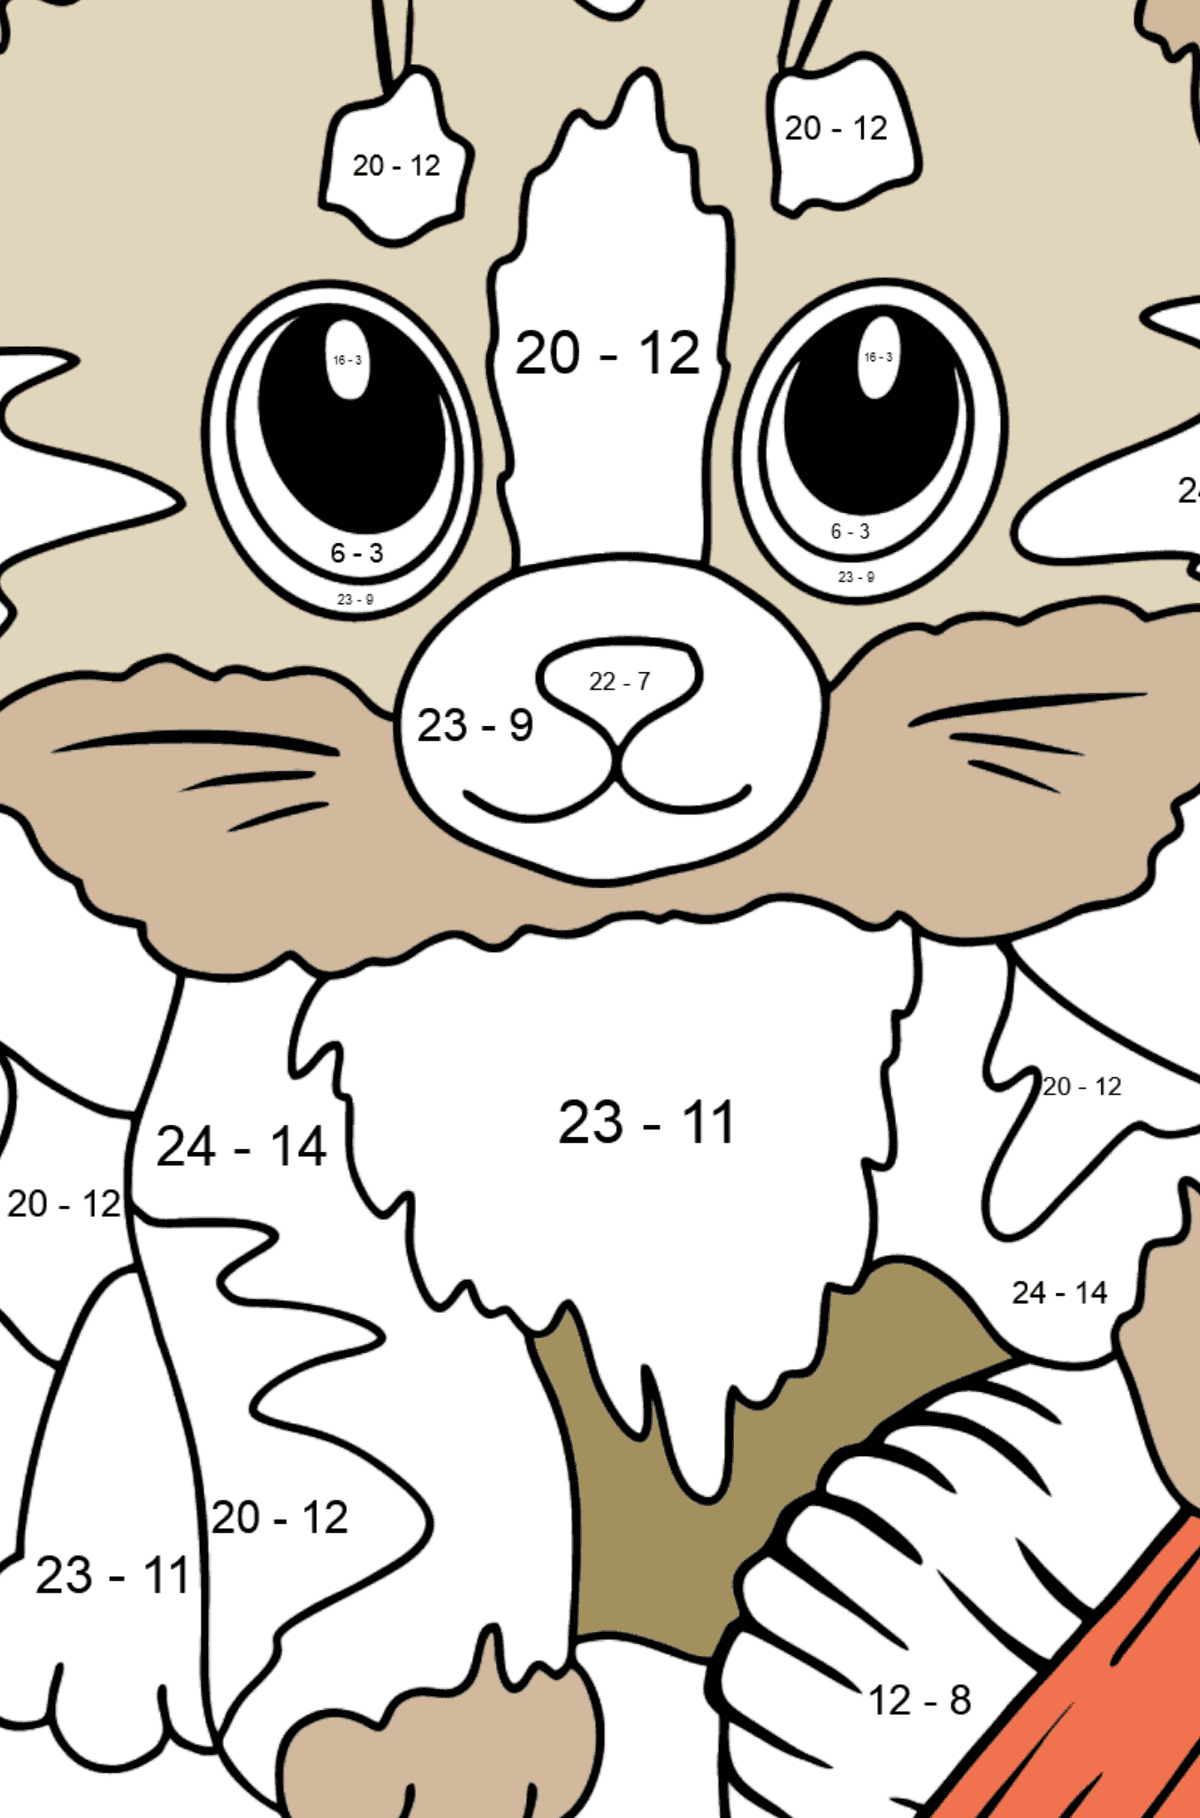 Cute Cat Coloring Page - Math Coloring - Subtraction for Kids